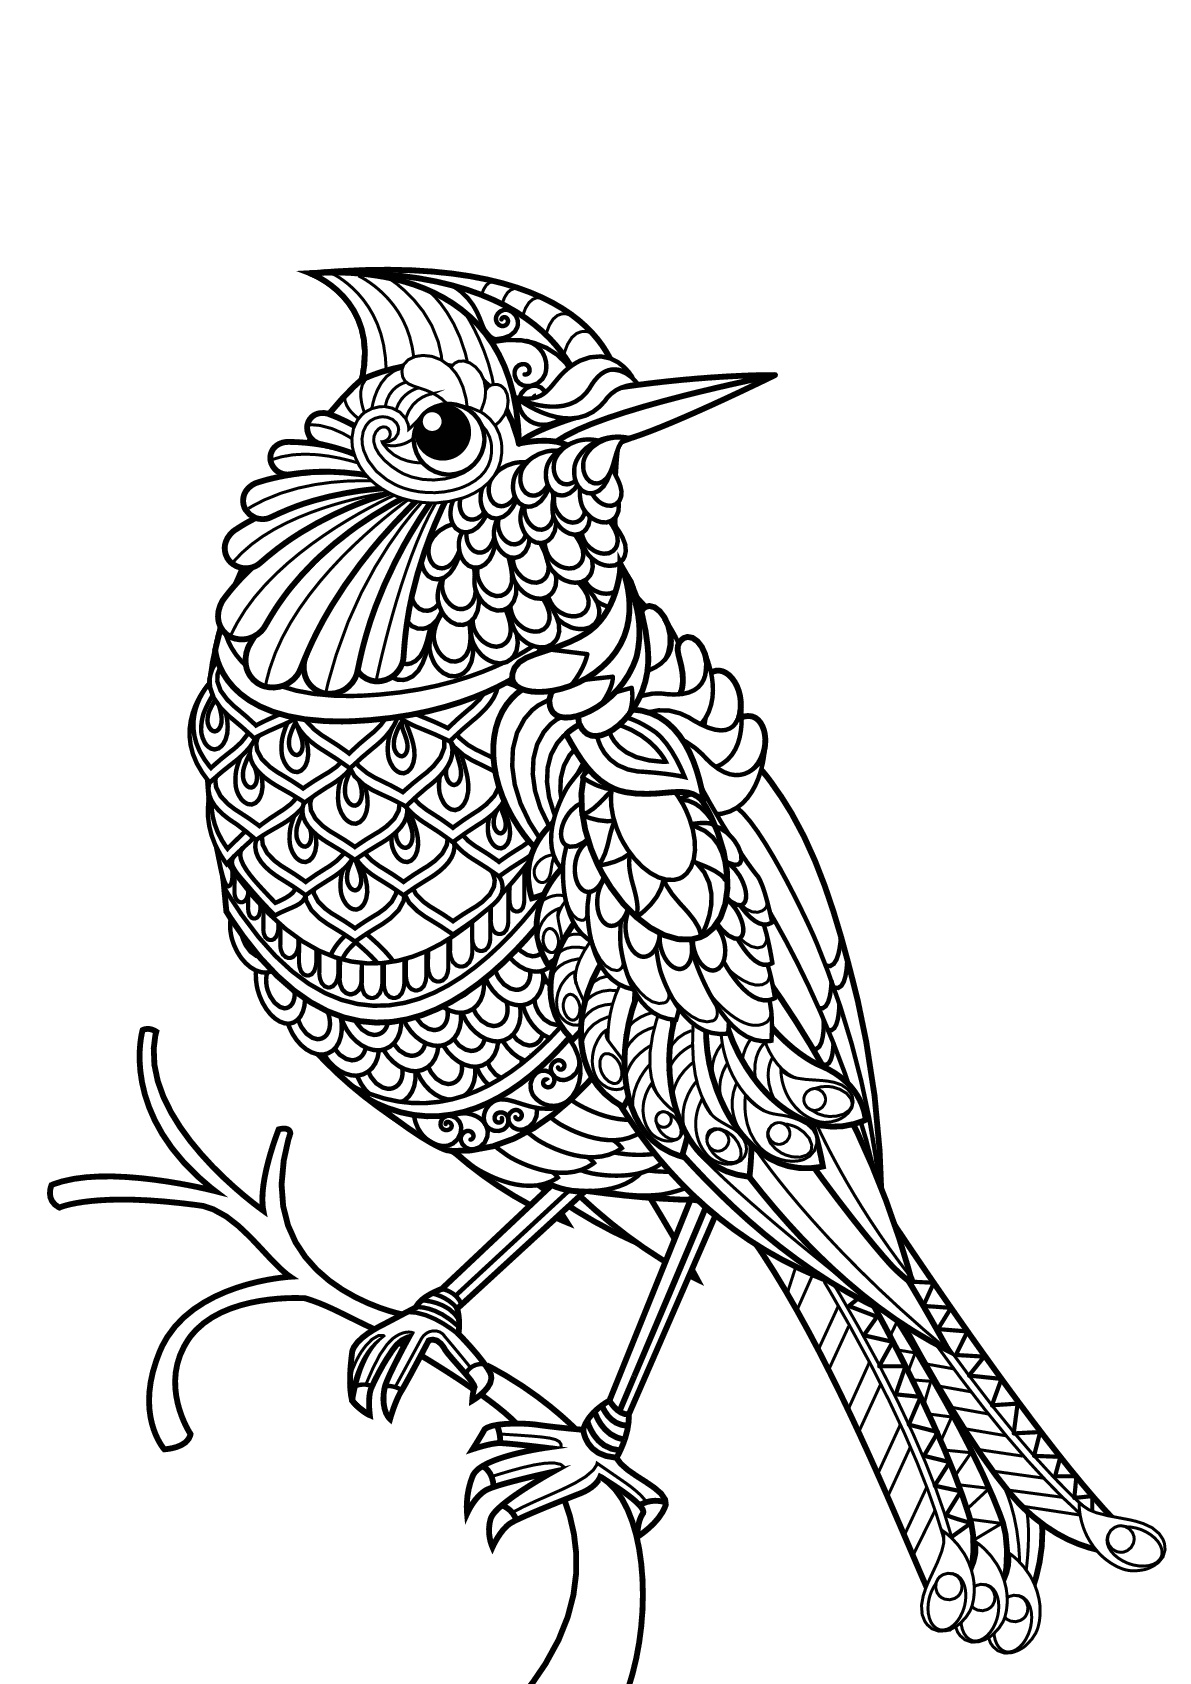 coloring sheet coloring pictures for kids cute coloring pages best coloring pages for kids coloring pictures sheet for coloring kids